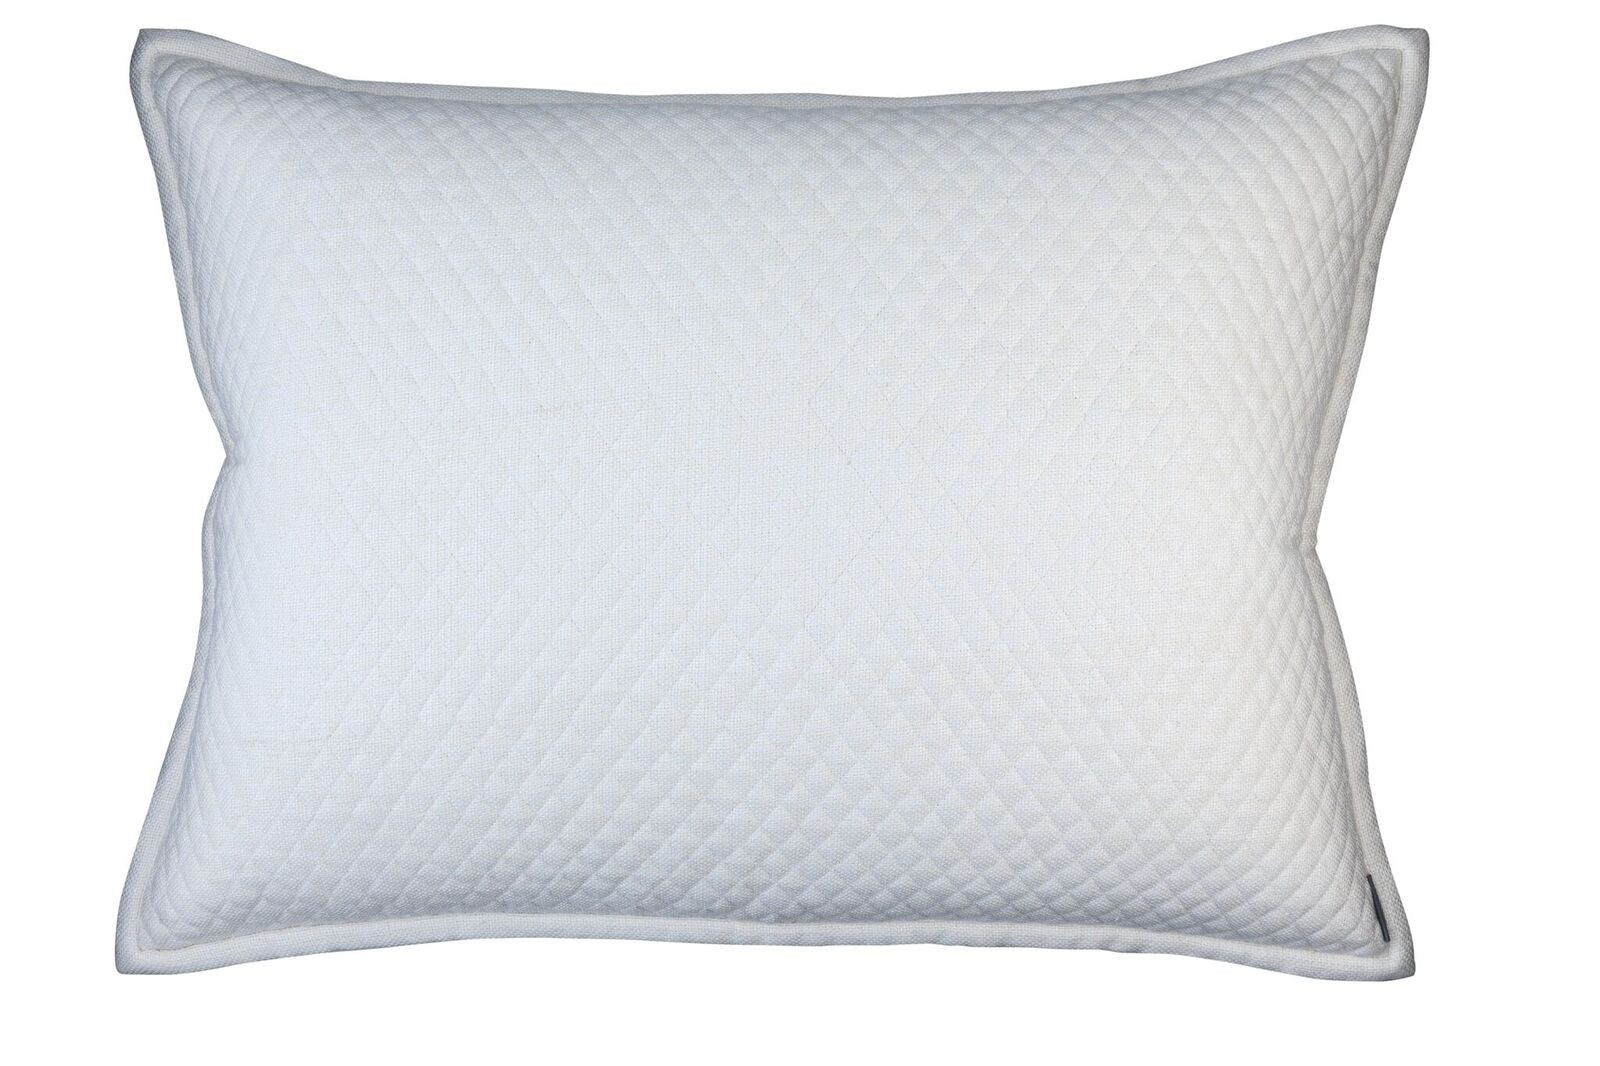 "LAURIE 1"" DIAMOND QUILTED LUXE EURO PILLOW IVORY BASKETWEAVE 27X36"